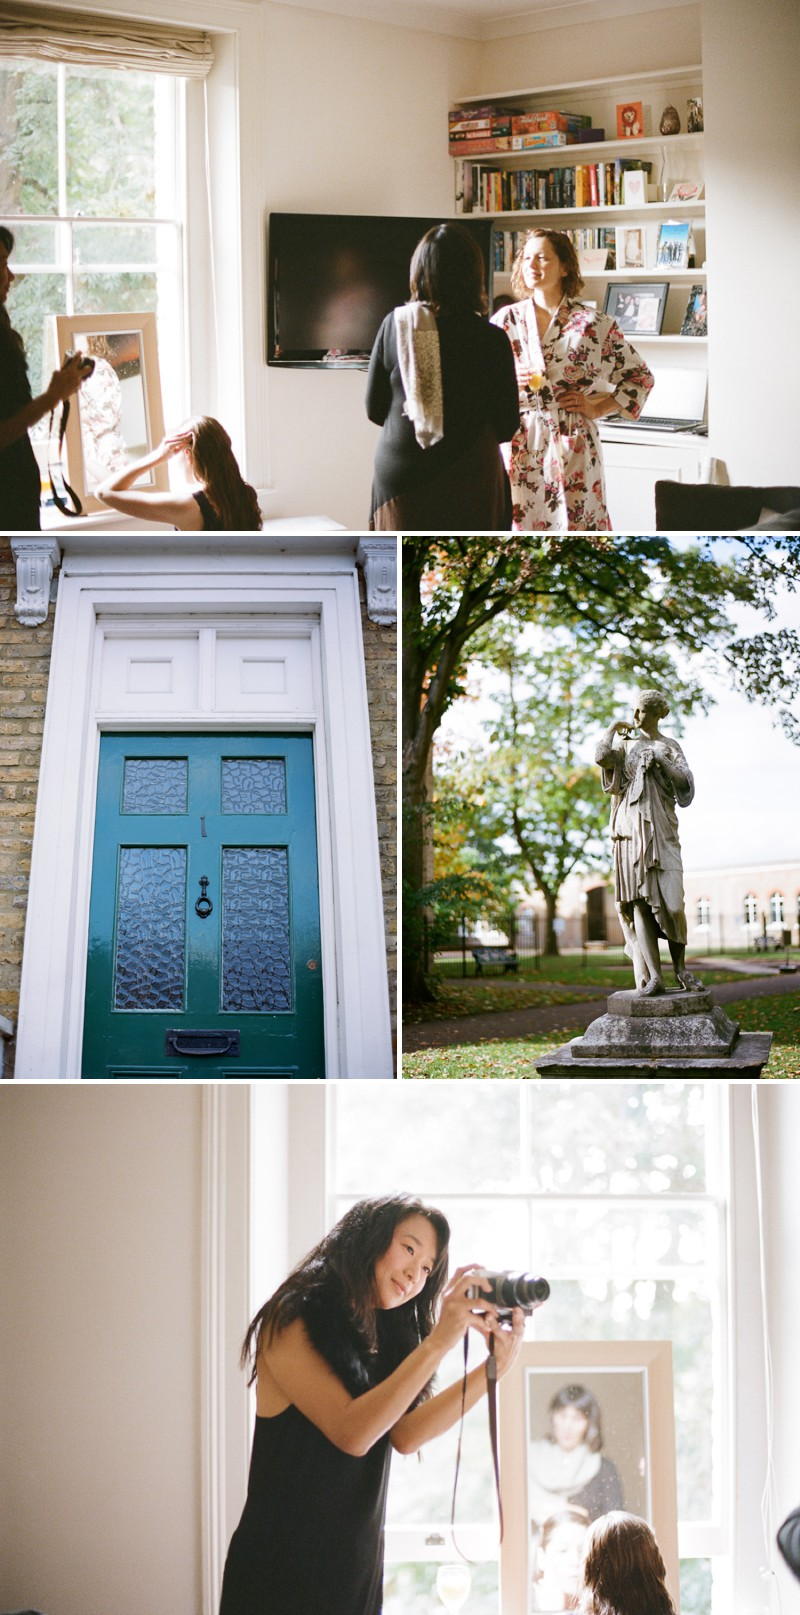 A Chic London Wedding At The Orleans House Gallery And White Horse Pub In Richmond With A JLM Couture Dress And Peach Antique Rose Bouquet By Peachey Photography._0003